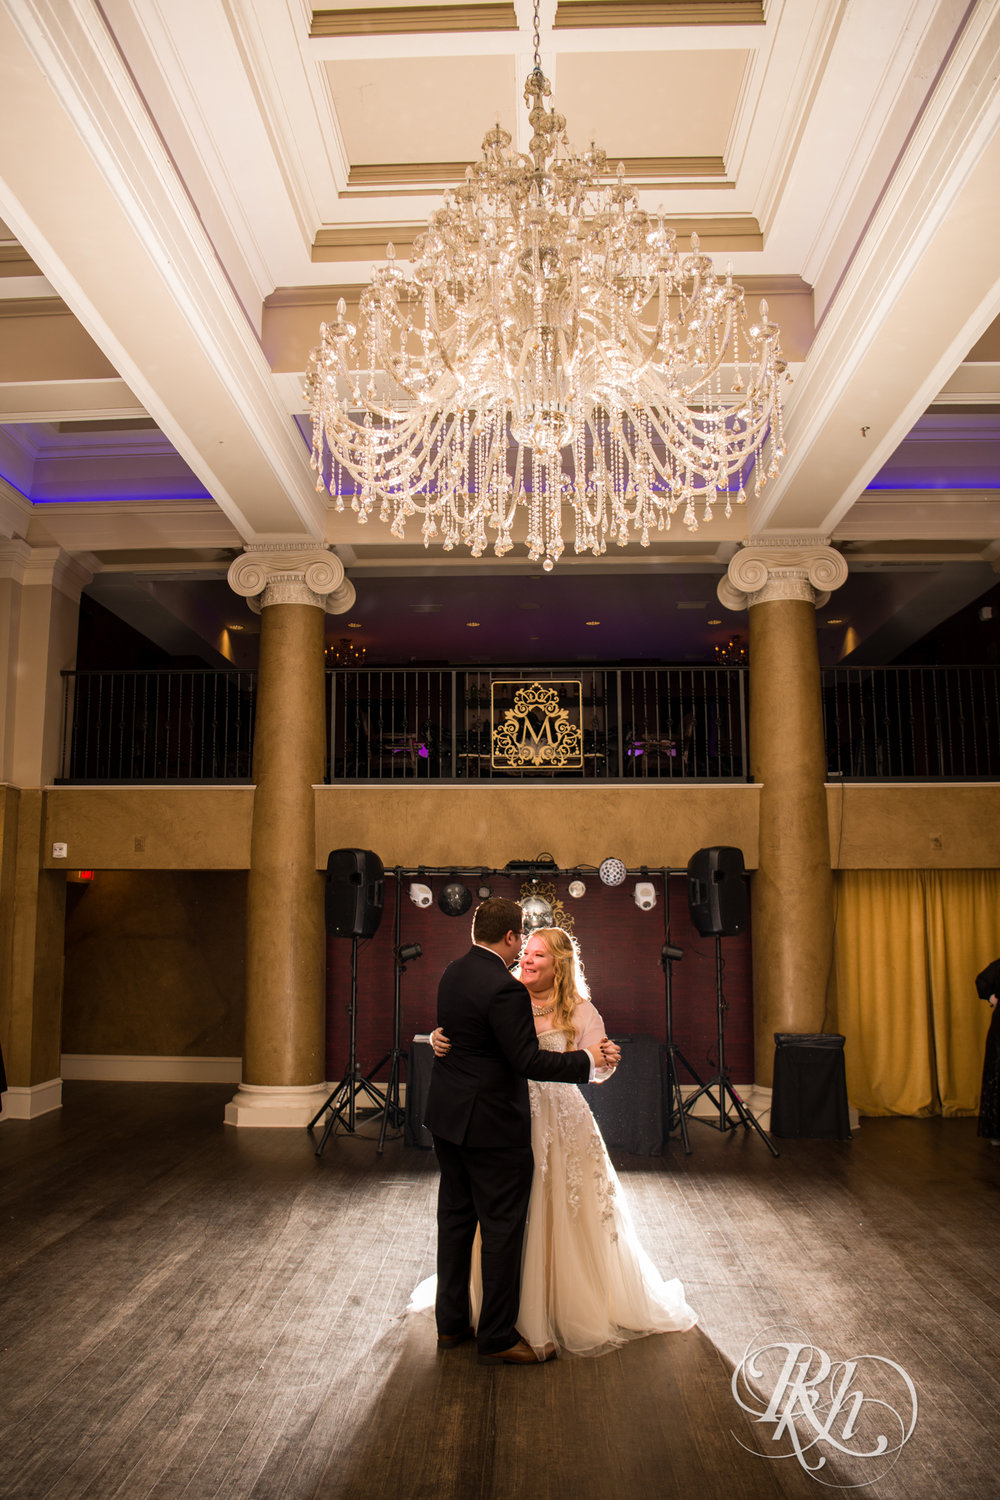 Cameron & Jesse - Minnesota Wedding Photography - Mansion at Uptown - RKH Images - Blog (58 of 65).jpg